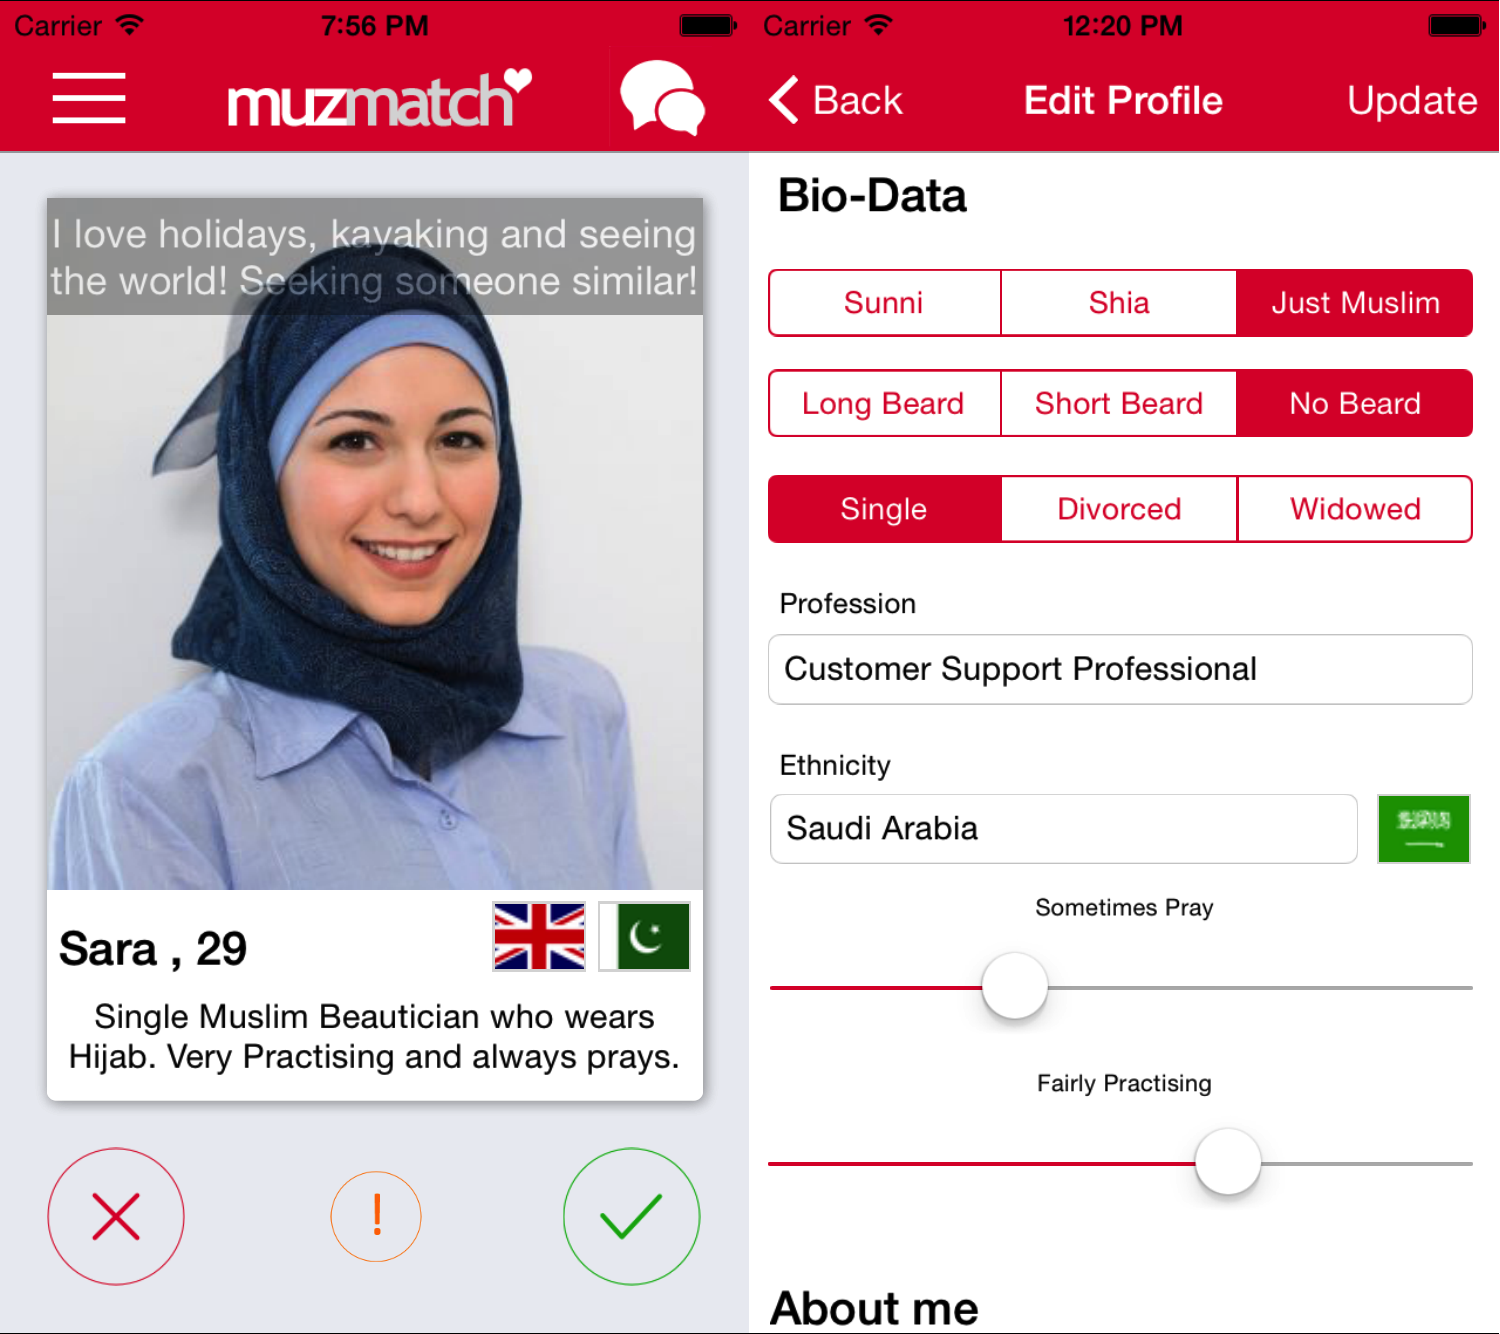 quito muslim dating site It is not always easy to meet single muslims – that's why elitesingles is here to help meet marriage-minded single muslims and start muslim dating here.